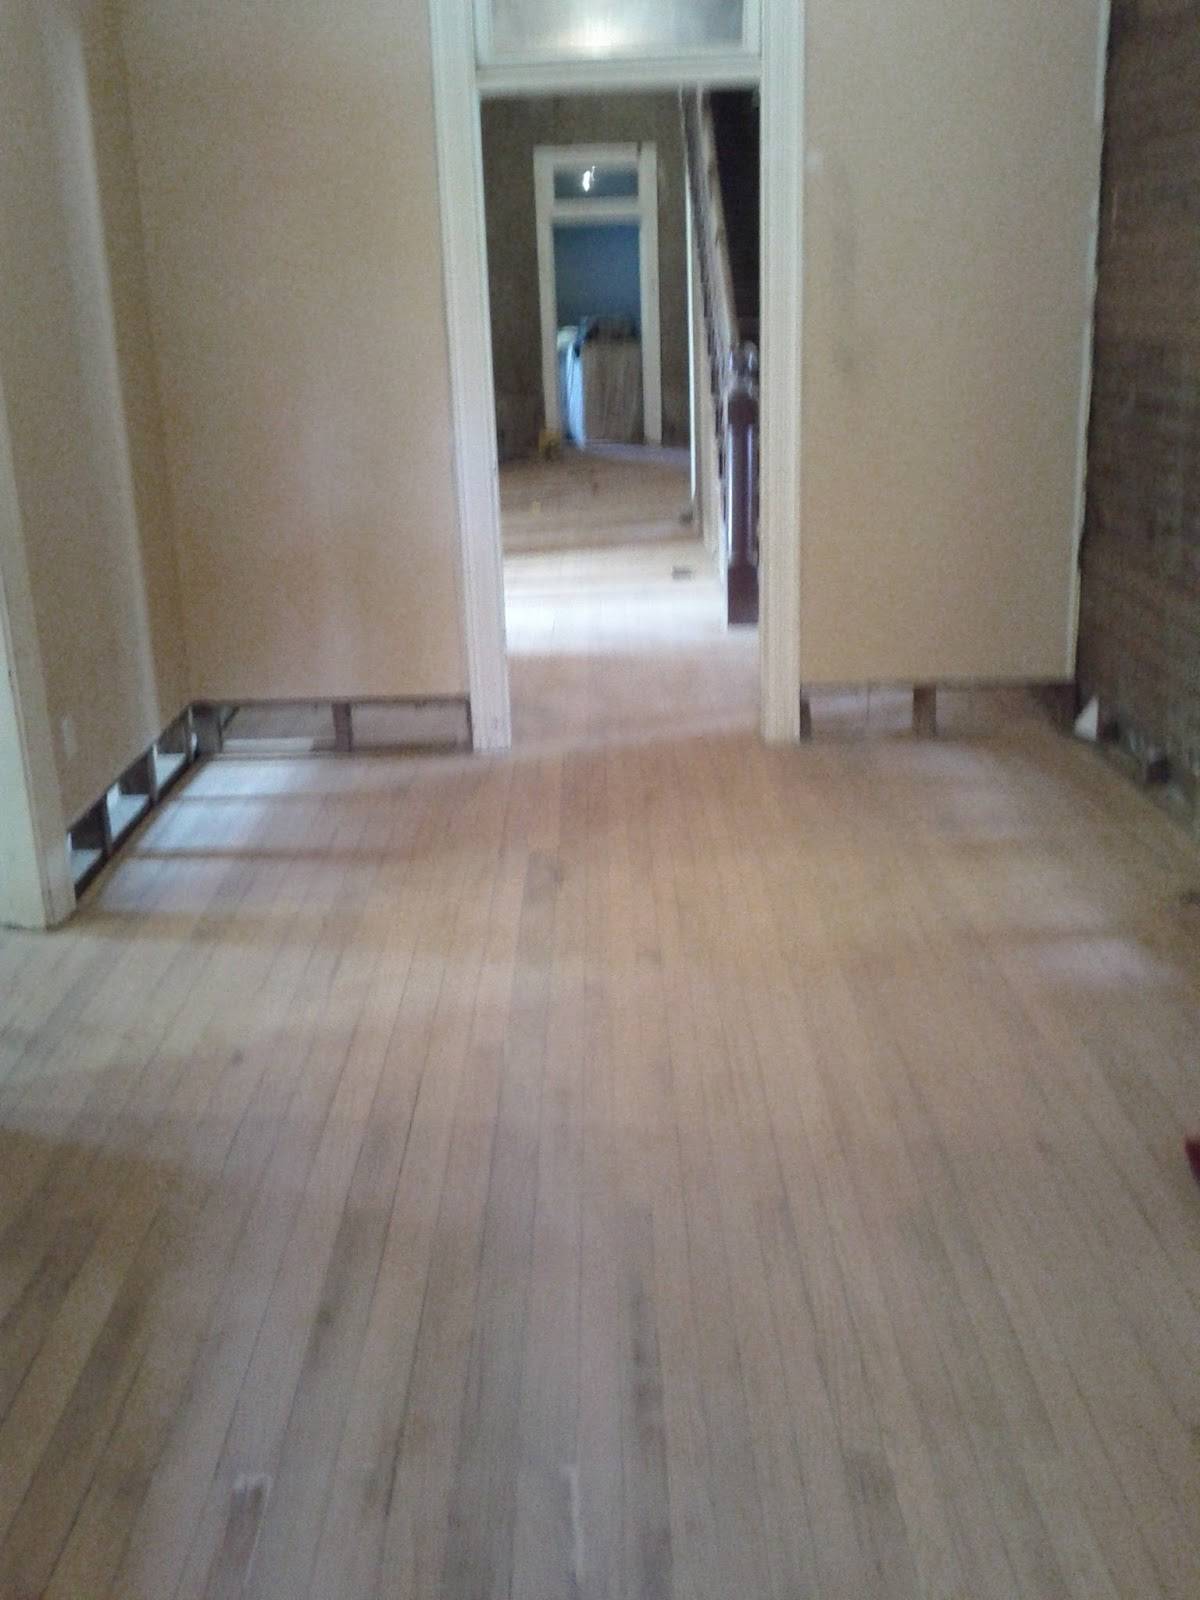 Country flooring direct options in hardwood flooring for for Natural wood flooring